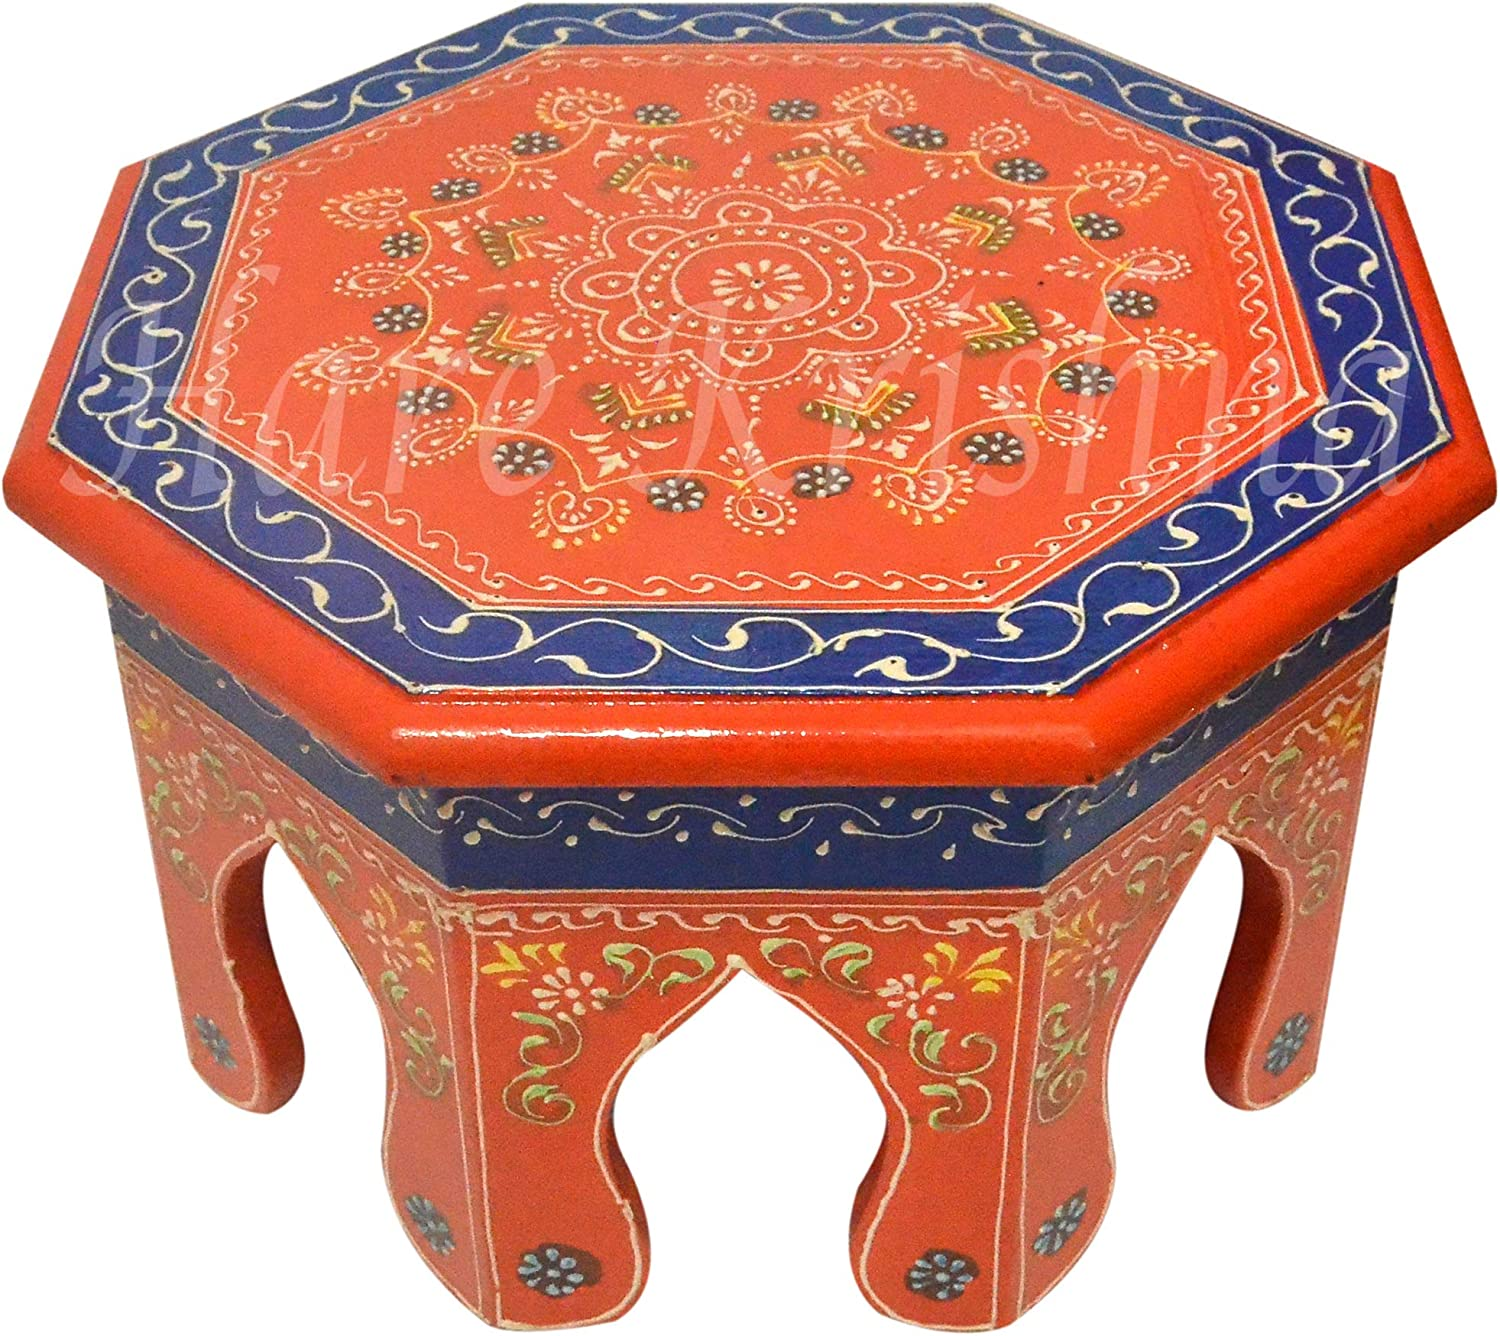 Round Asian Furniture Side End Low Table Wooden Handmade Pooja Chowki Bajot 10 x 10 x 6 Inches